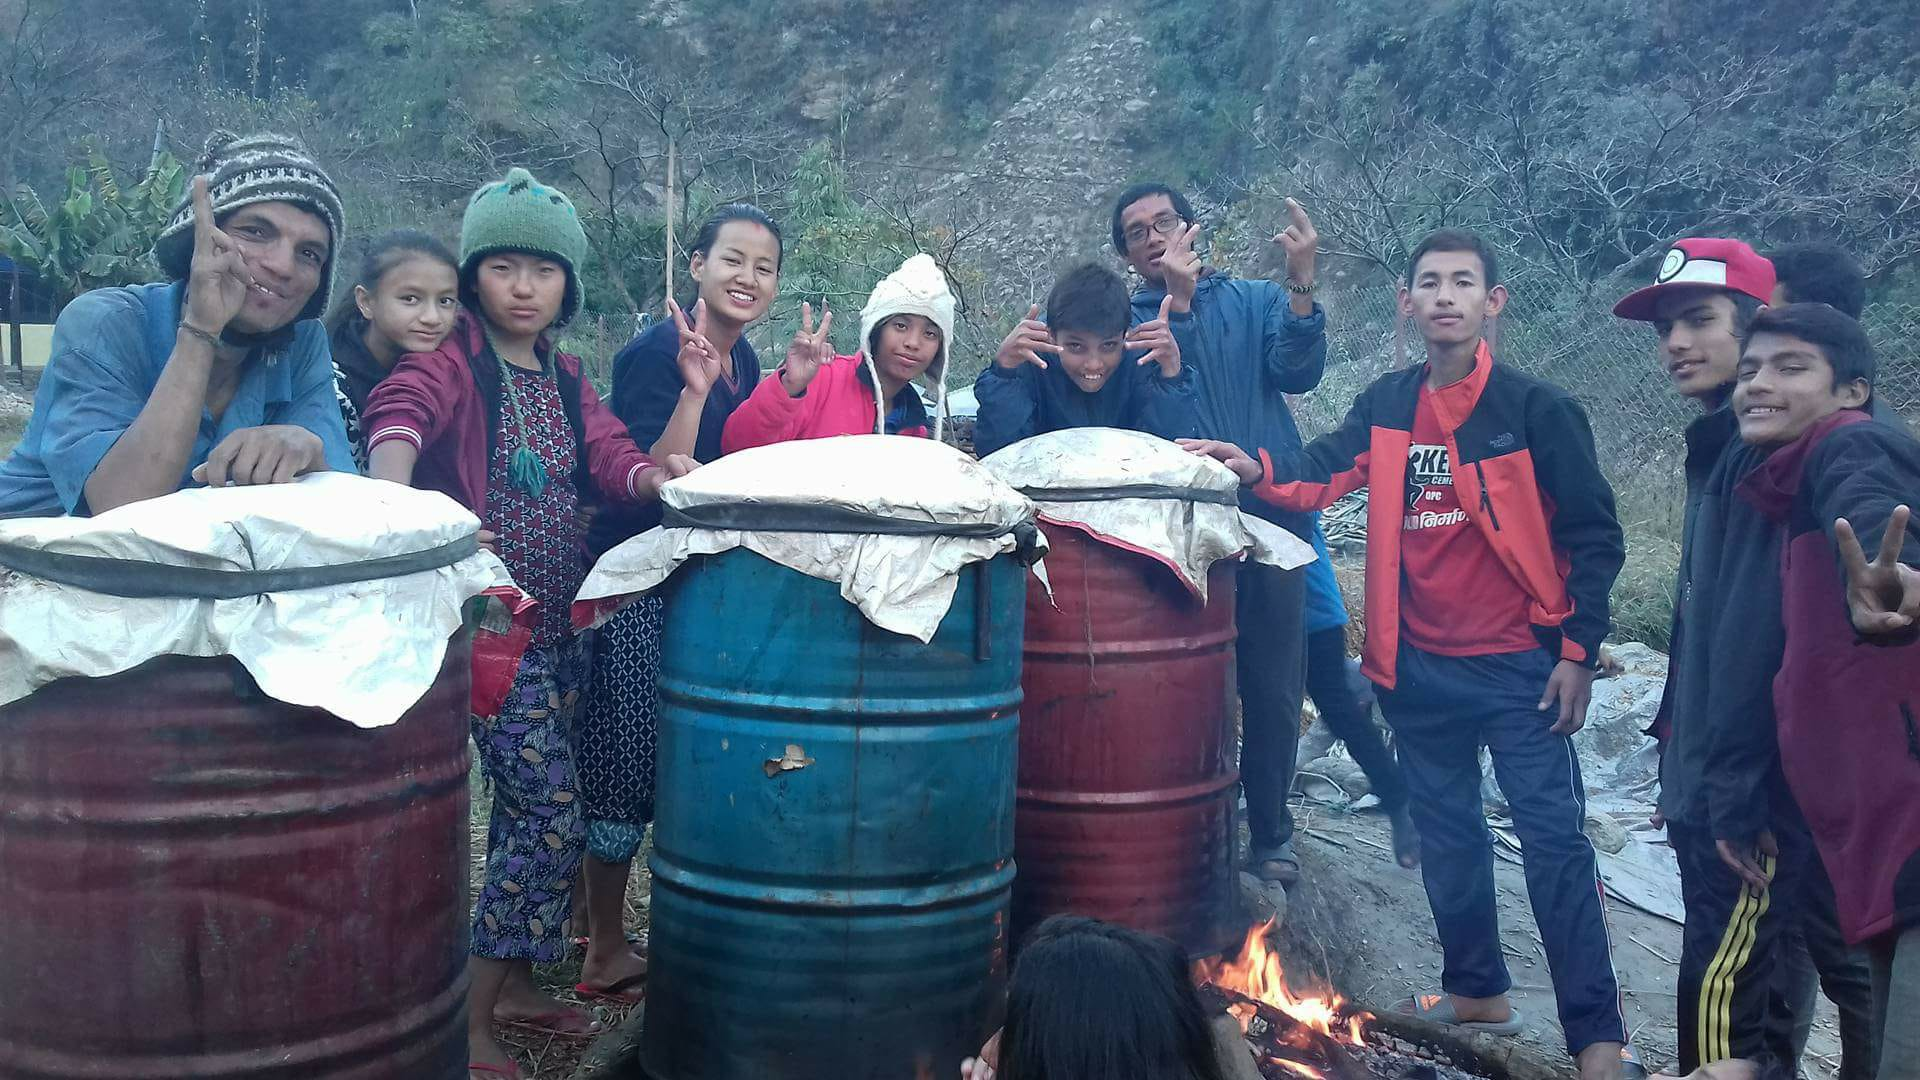 Students boiling hay which will be used as the substrate in which the mushrooms will grow